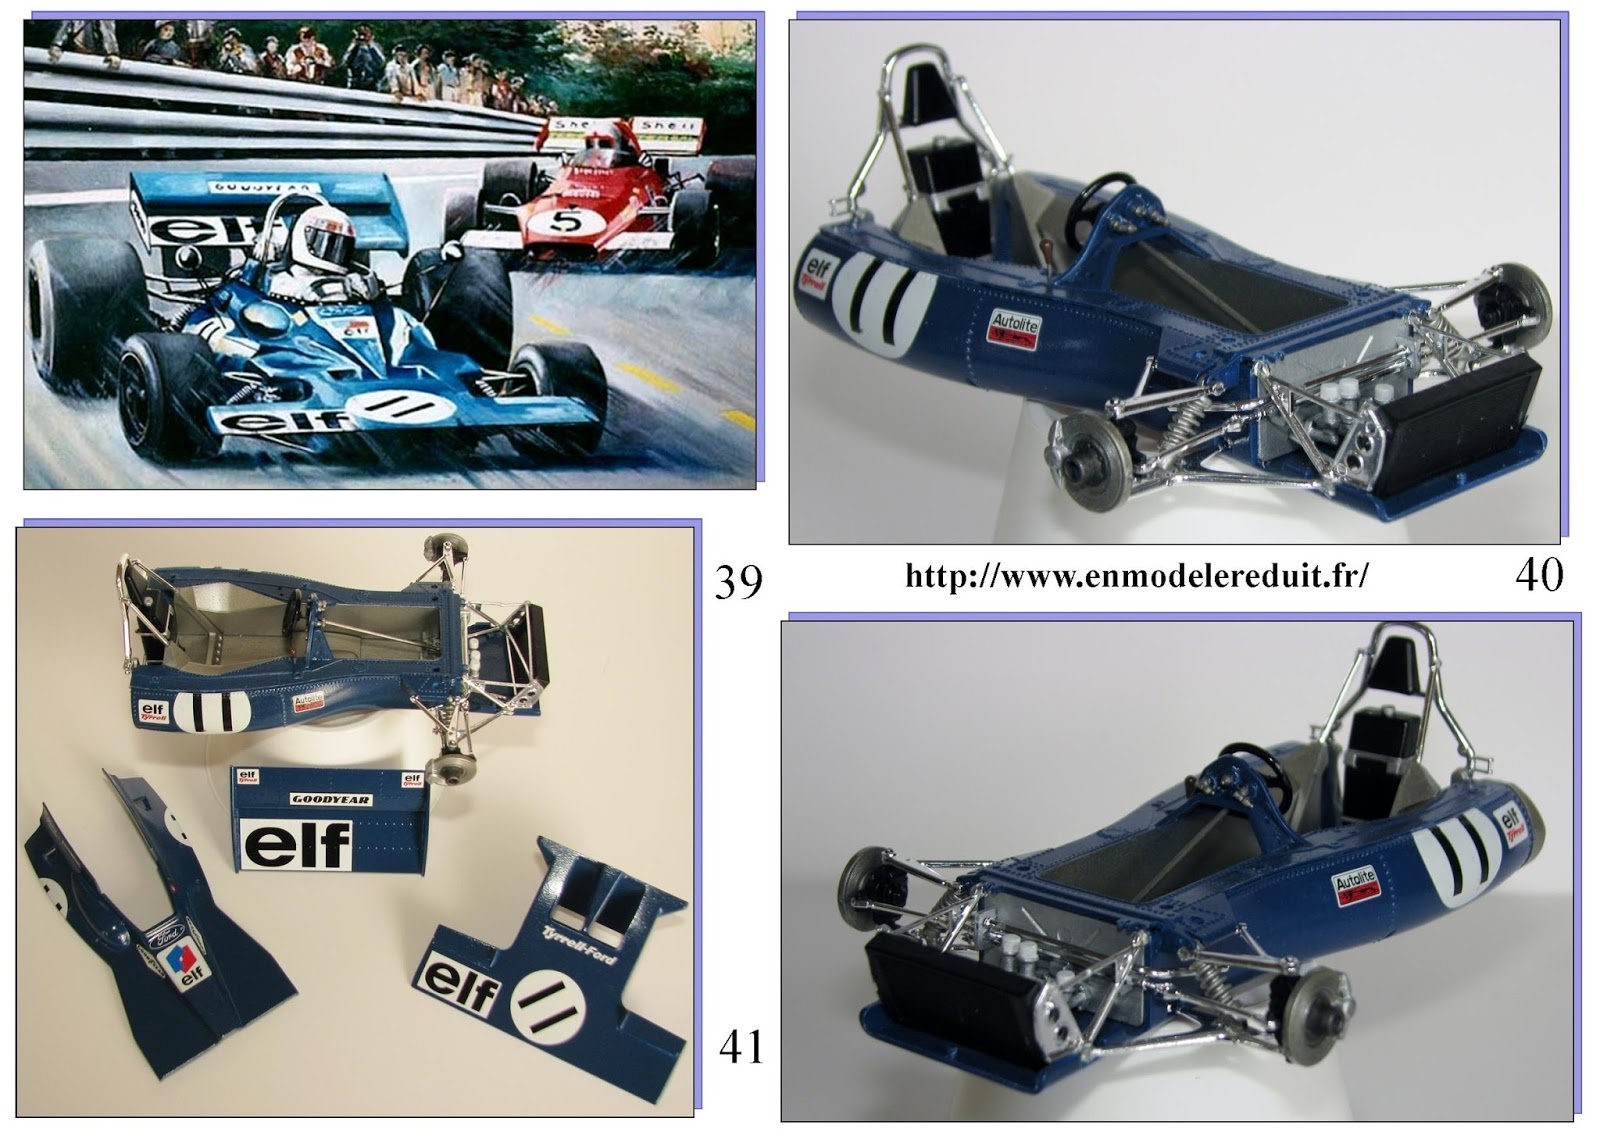 en mod le r duit tyrrell 003 1971 version gp de monaco. Black Bedroom Furniture Sets. Home Design Ideas